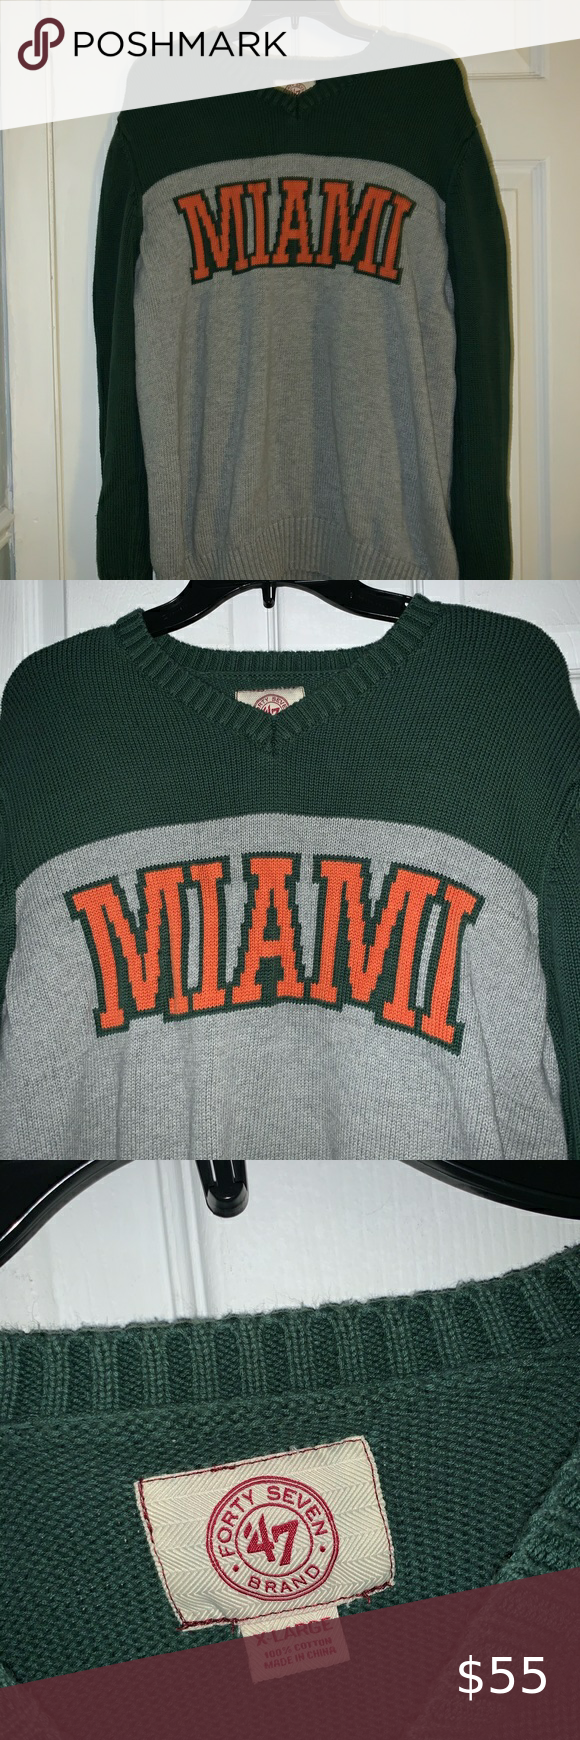 University Of Miami Knit Crewneck Excellent Condition Never Used Umiami Knit Sweater 47 Tops Clothes Design University Of Miami Crew Neck [ 1740 x 580 Pixel ]